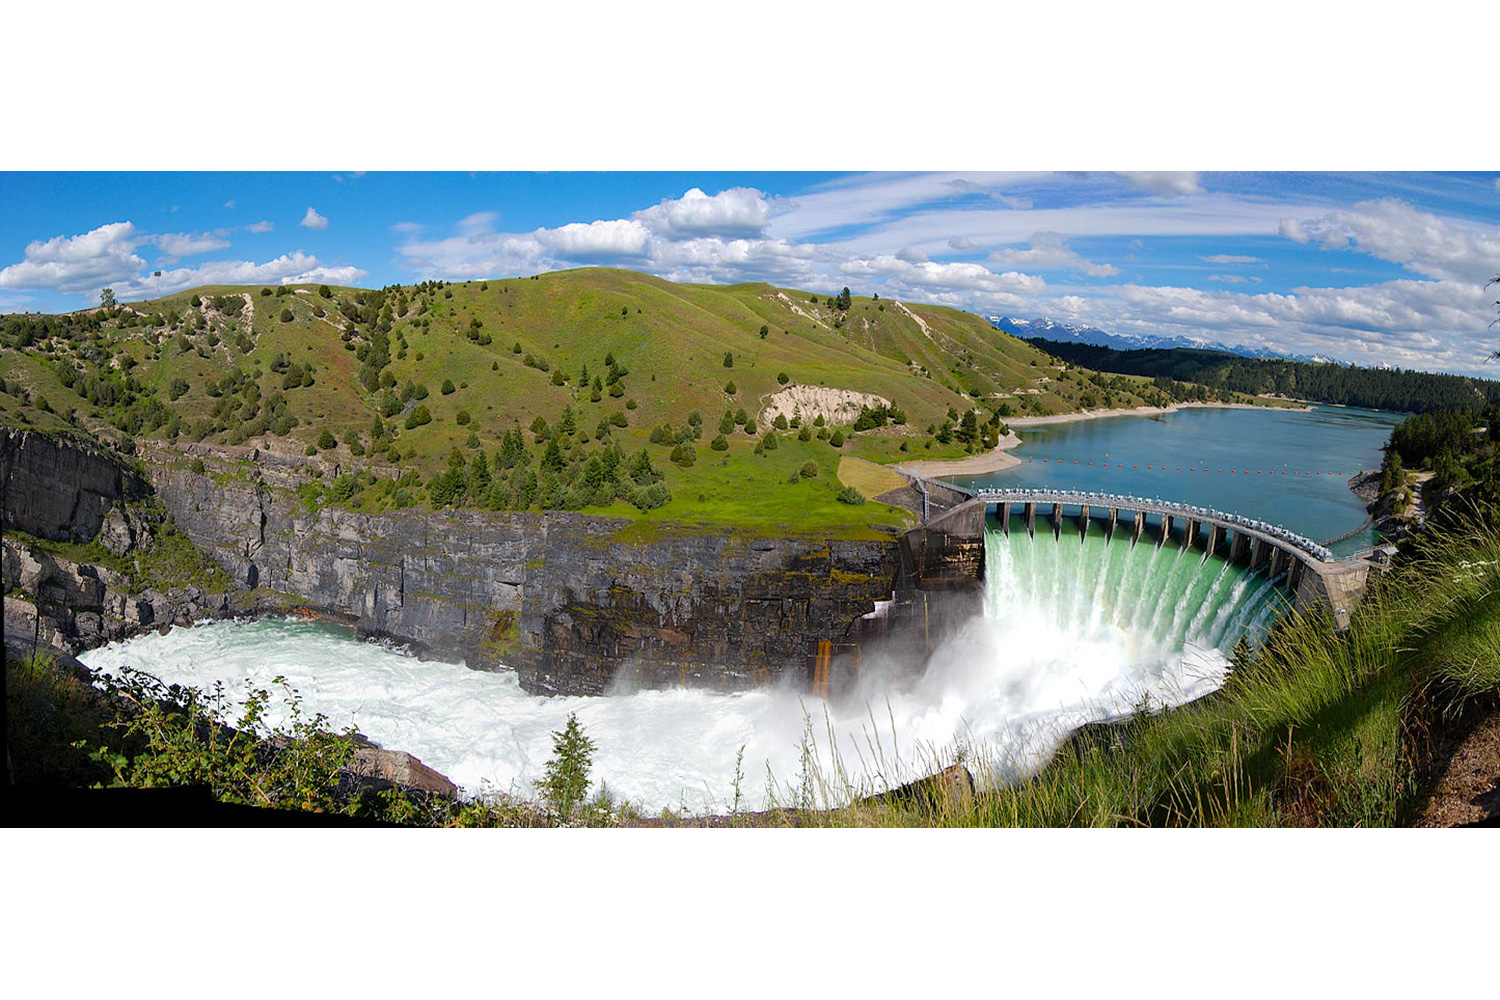 Montana tribes will be the first to own a hydroelectric dam (Powering ...